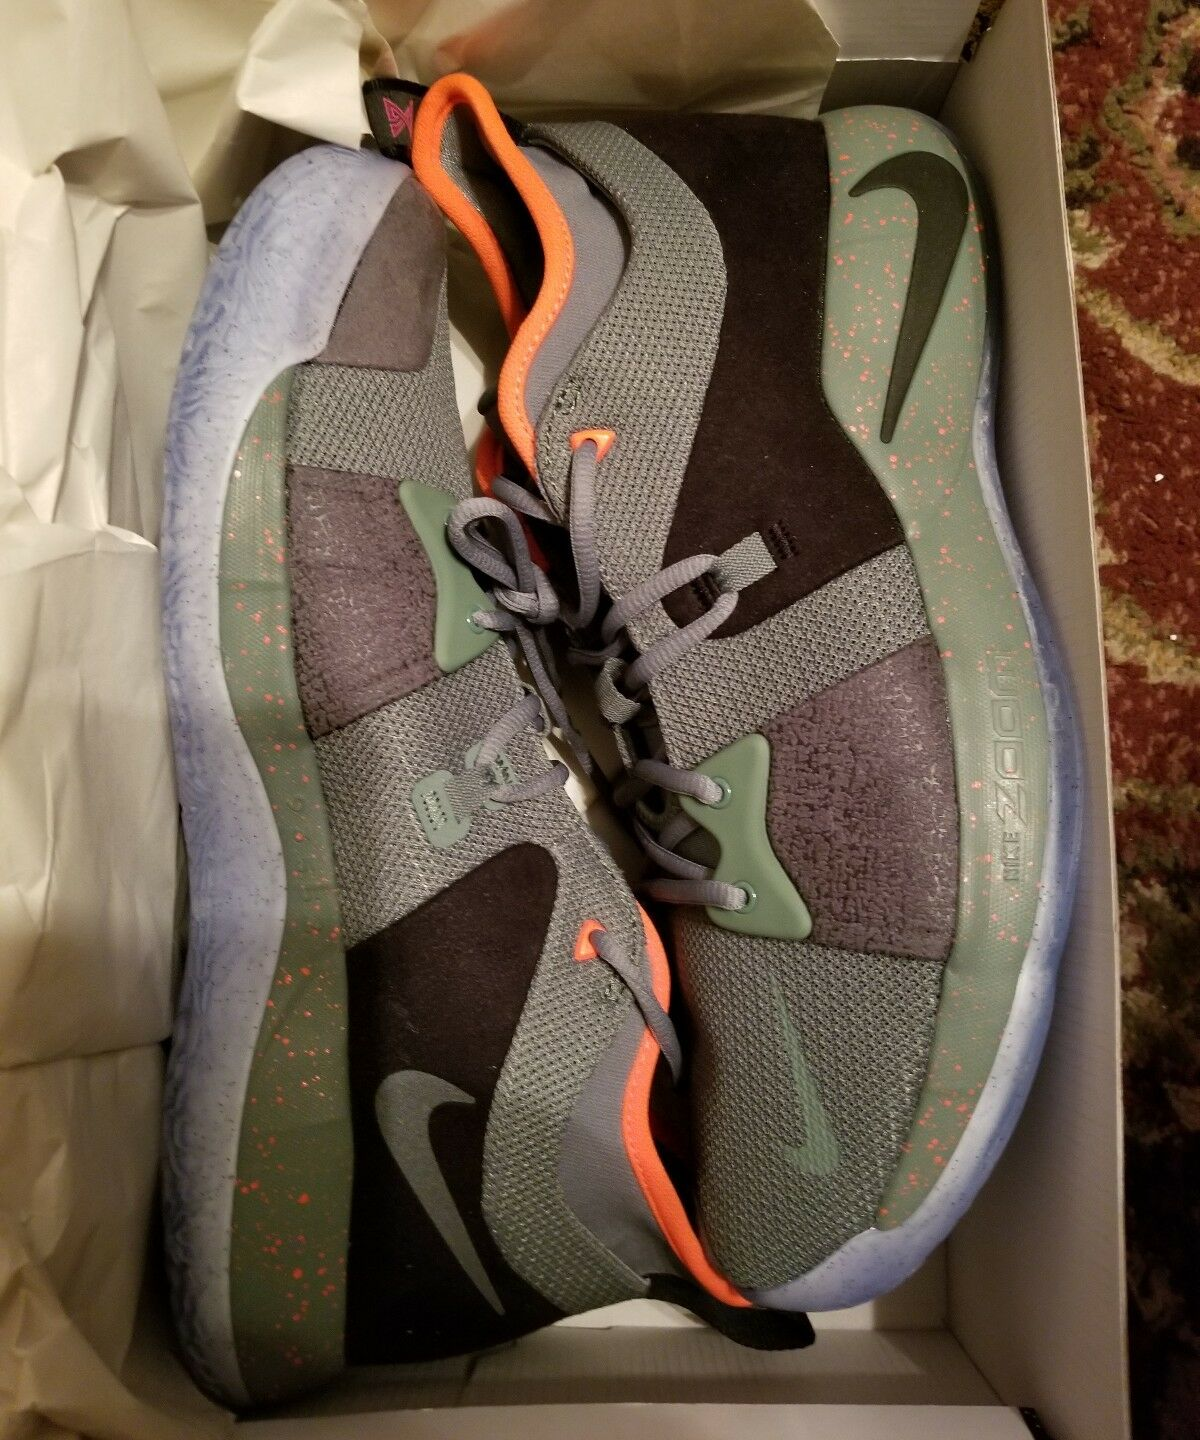 Nike PG 2 Palmdale All Star Clay Green Black AO1750-300 Men's sz 14 NEW shoes